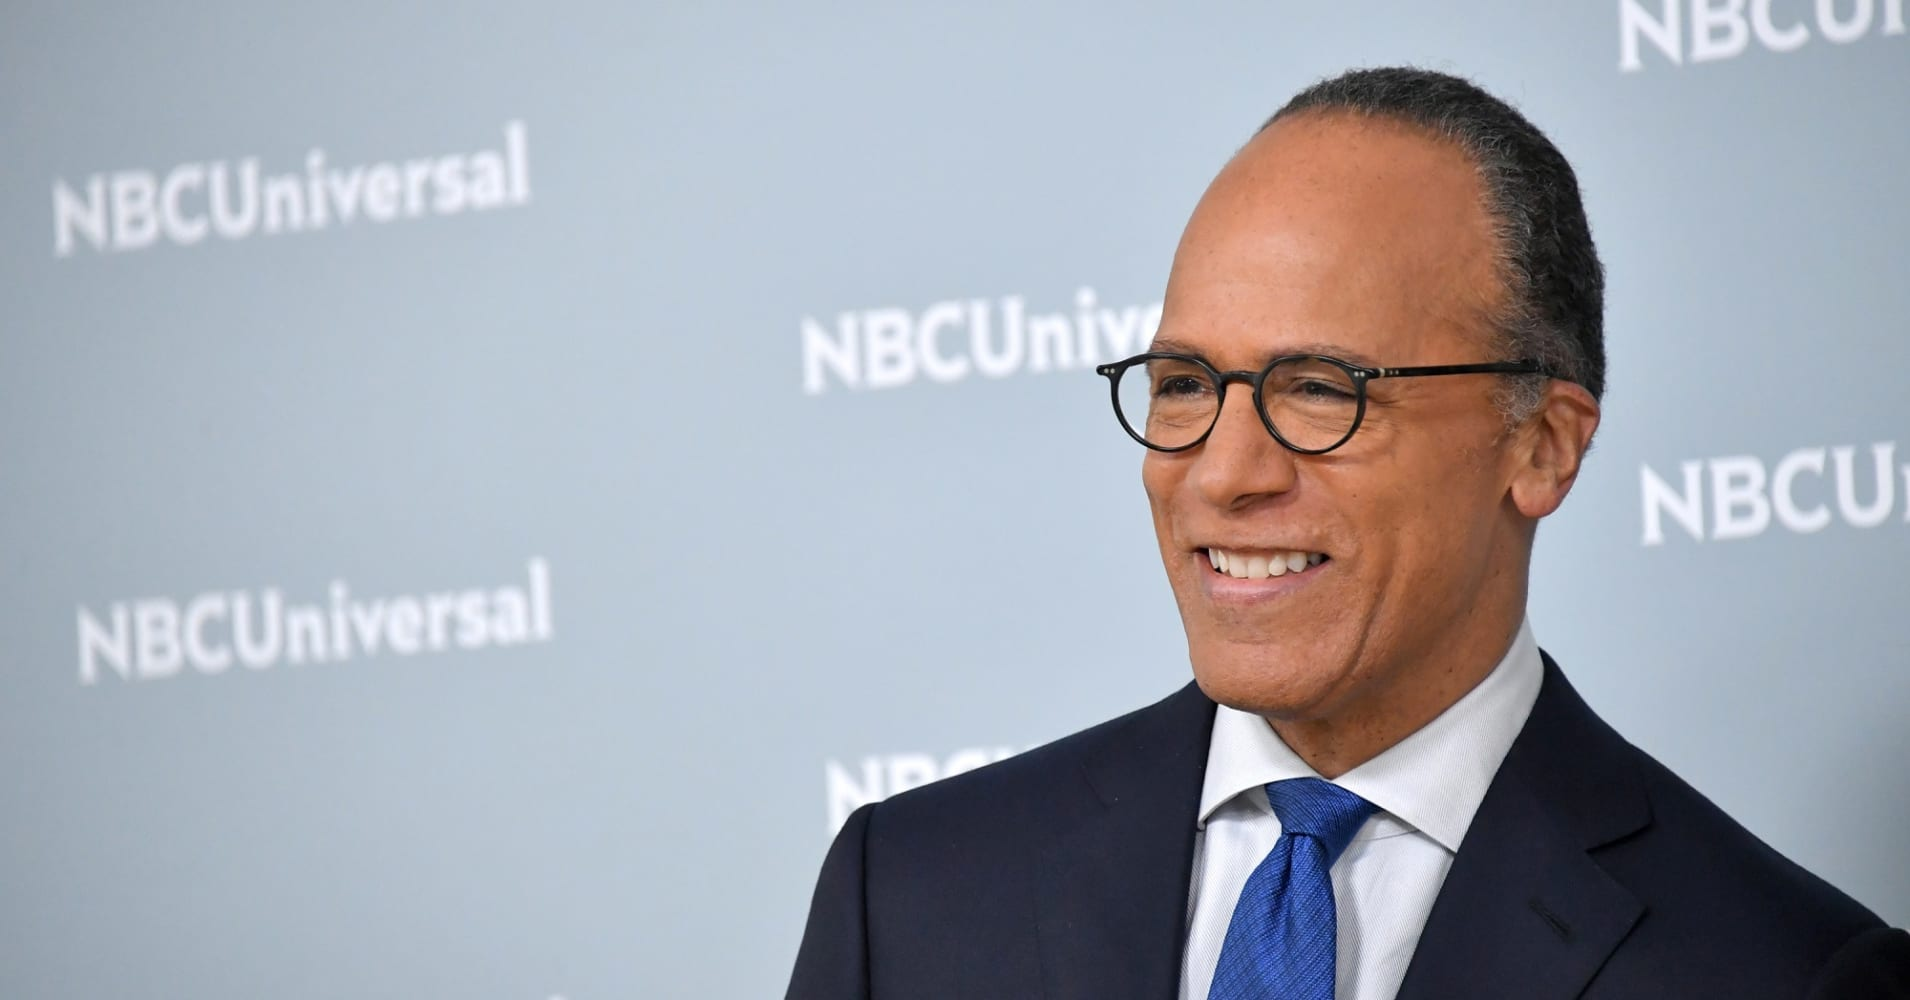 NBC Nightly News and Dateline NBC anchor Lester Holt